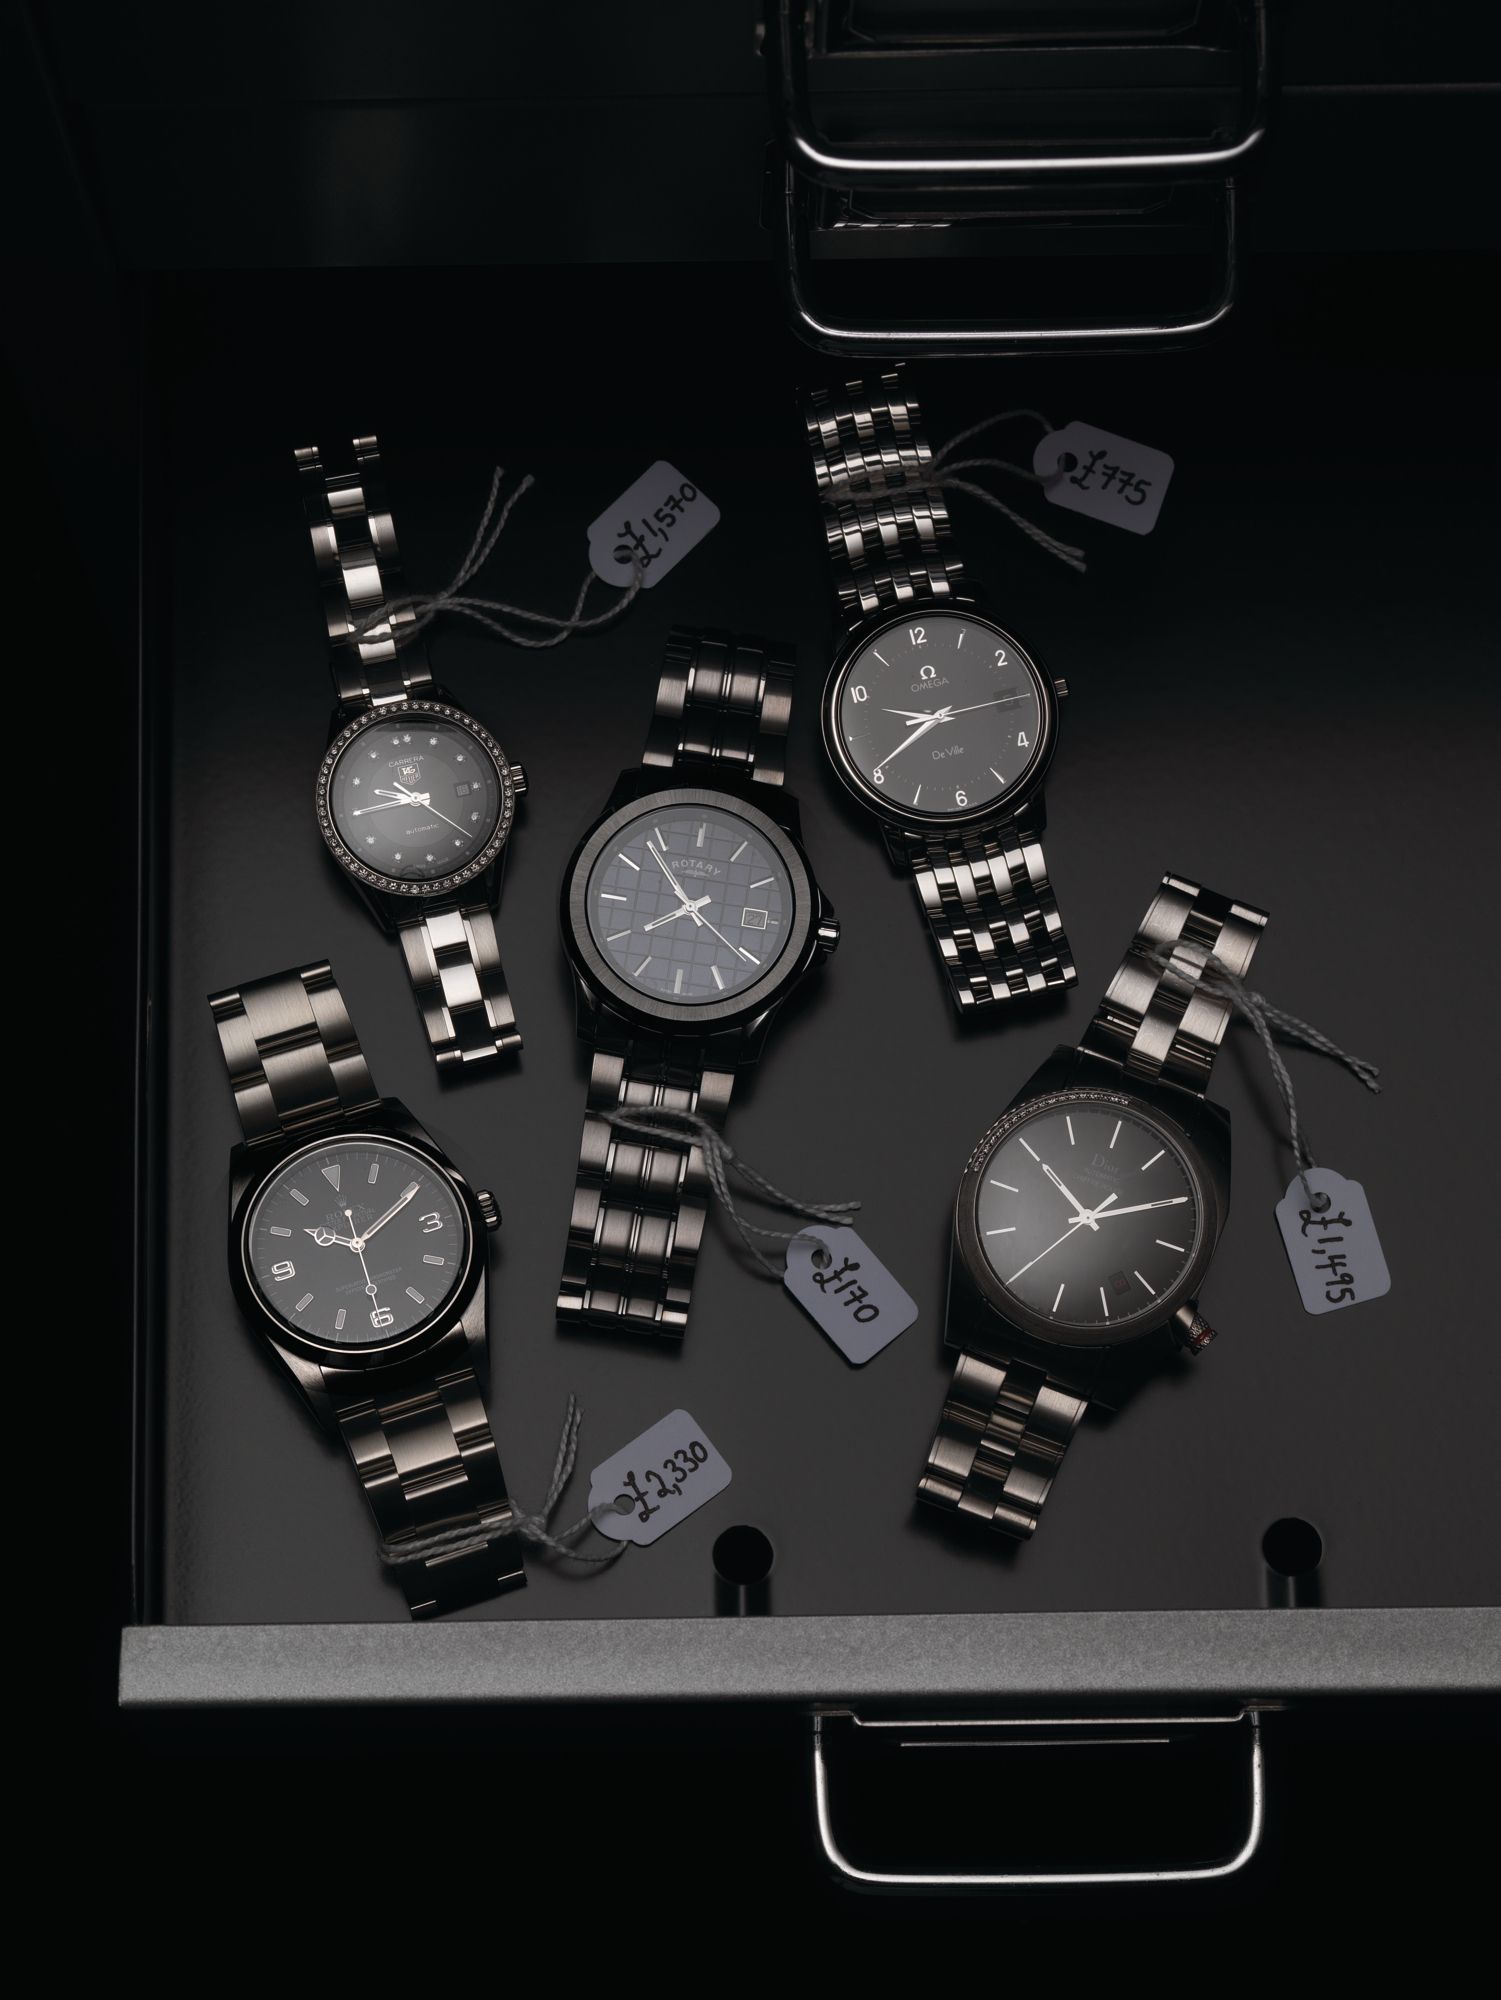 Tips On How To Safeguard Your Luxury Watch Collection